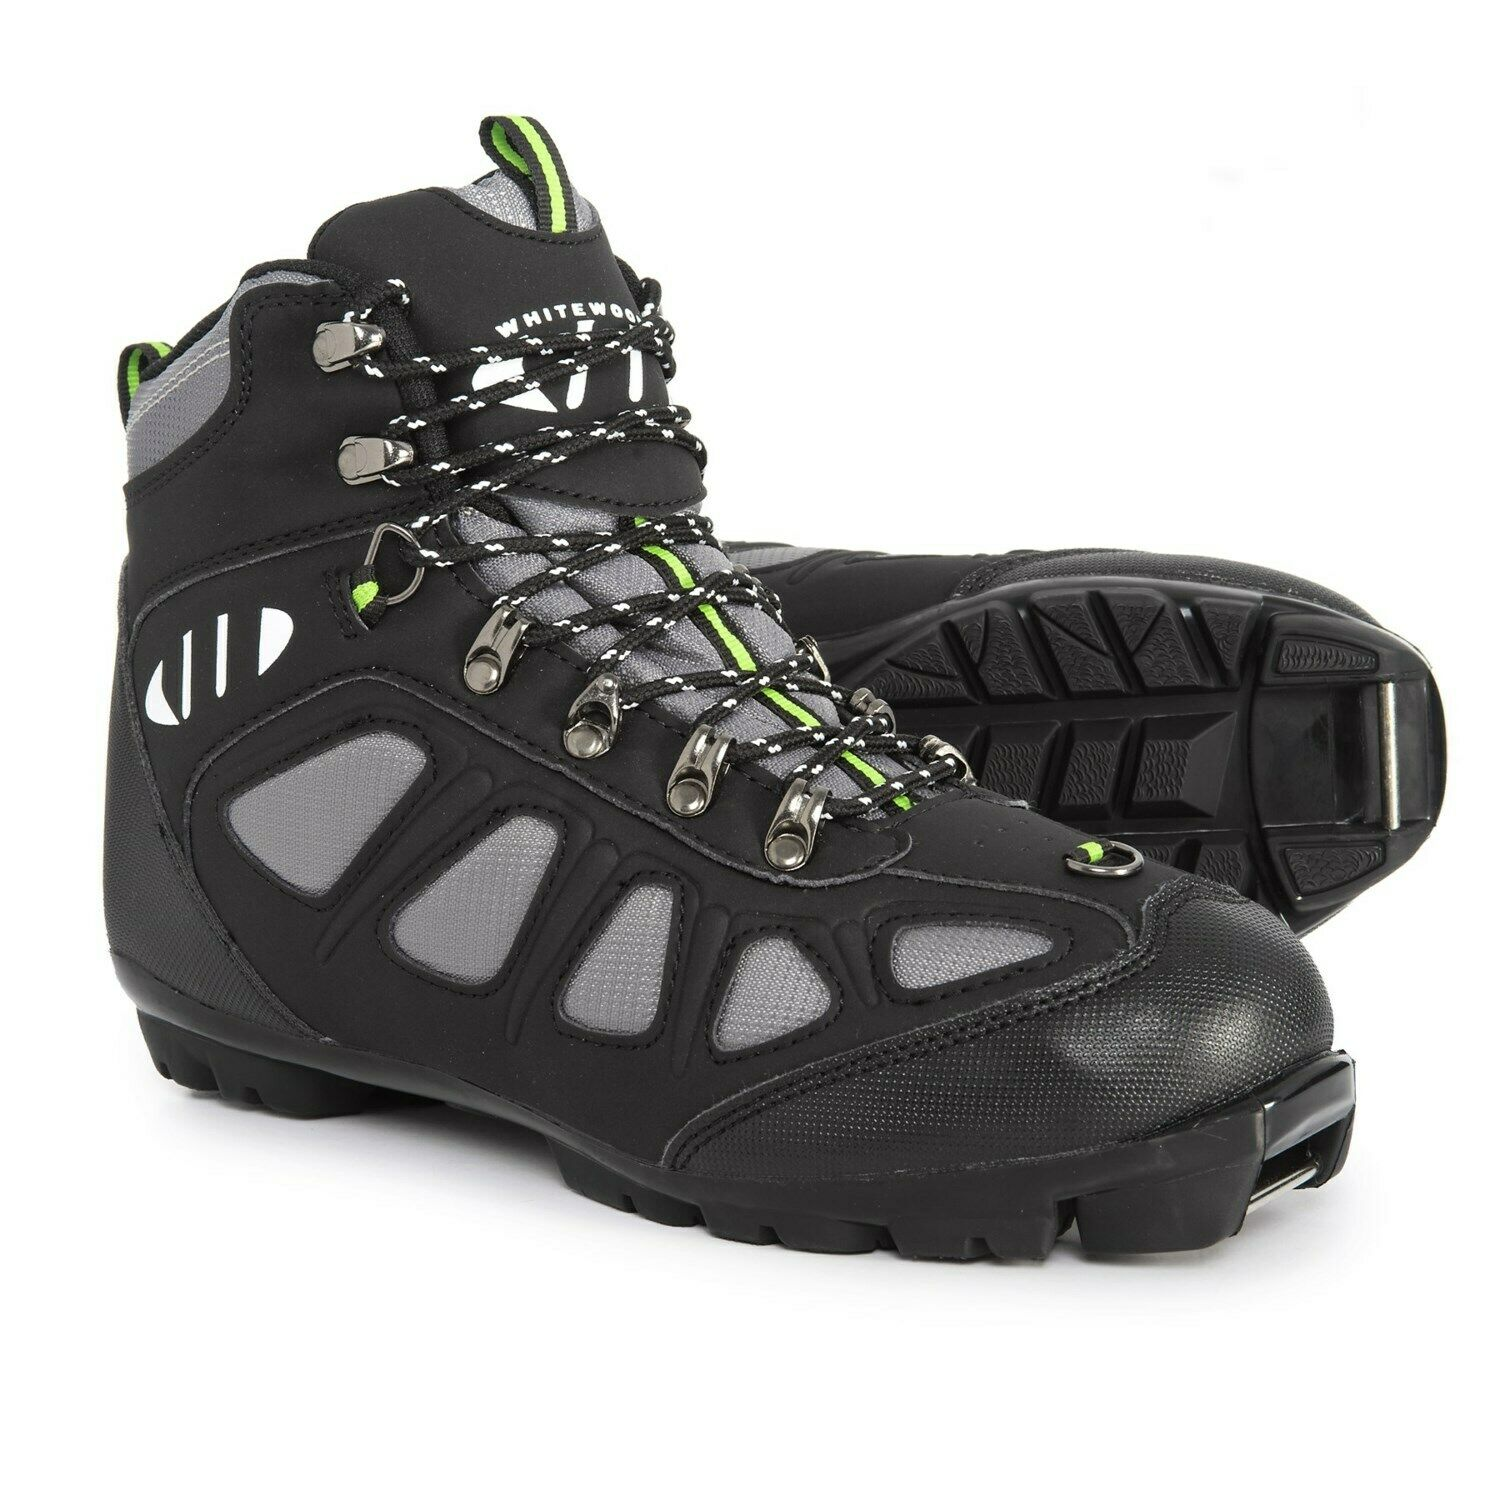 Whitewoods 302 boot XC NNN Size 35 (3M  4W 34EUR) boots cross country ski New  discount promotions